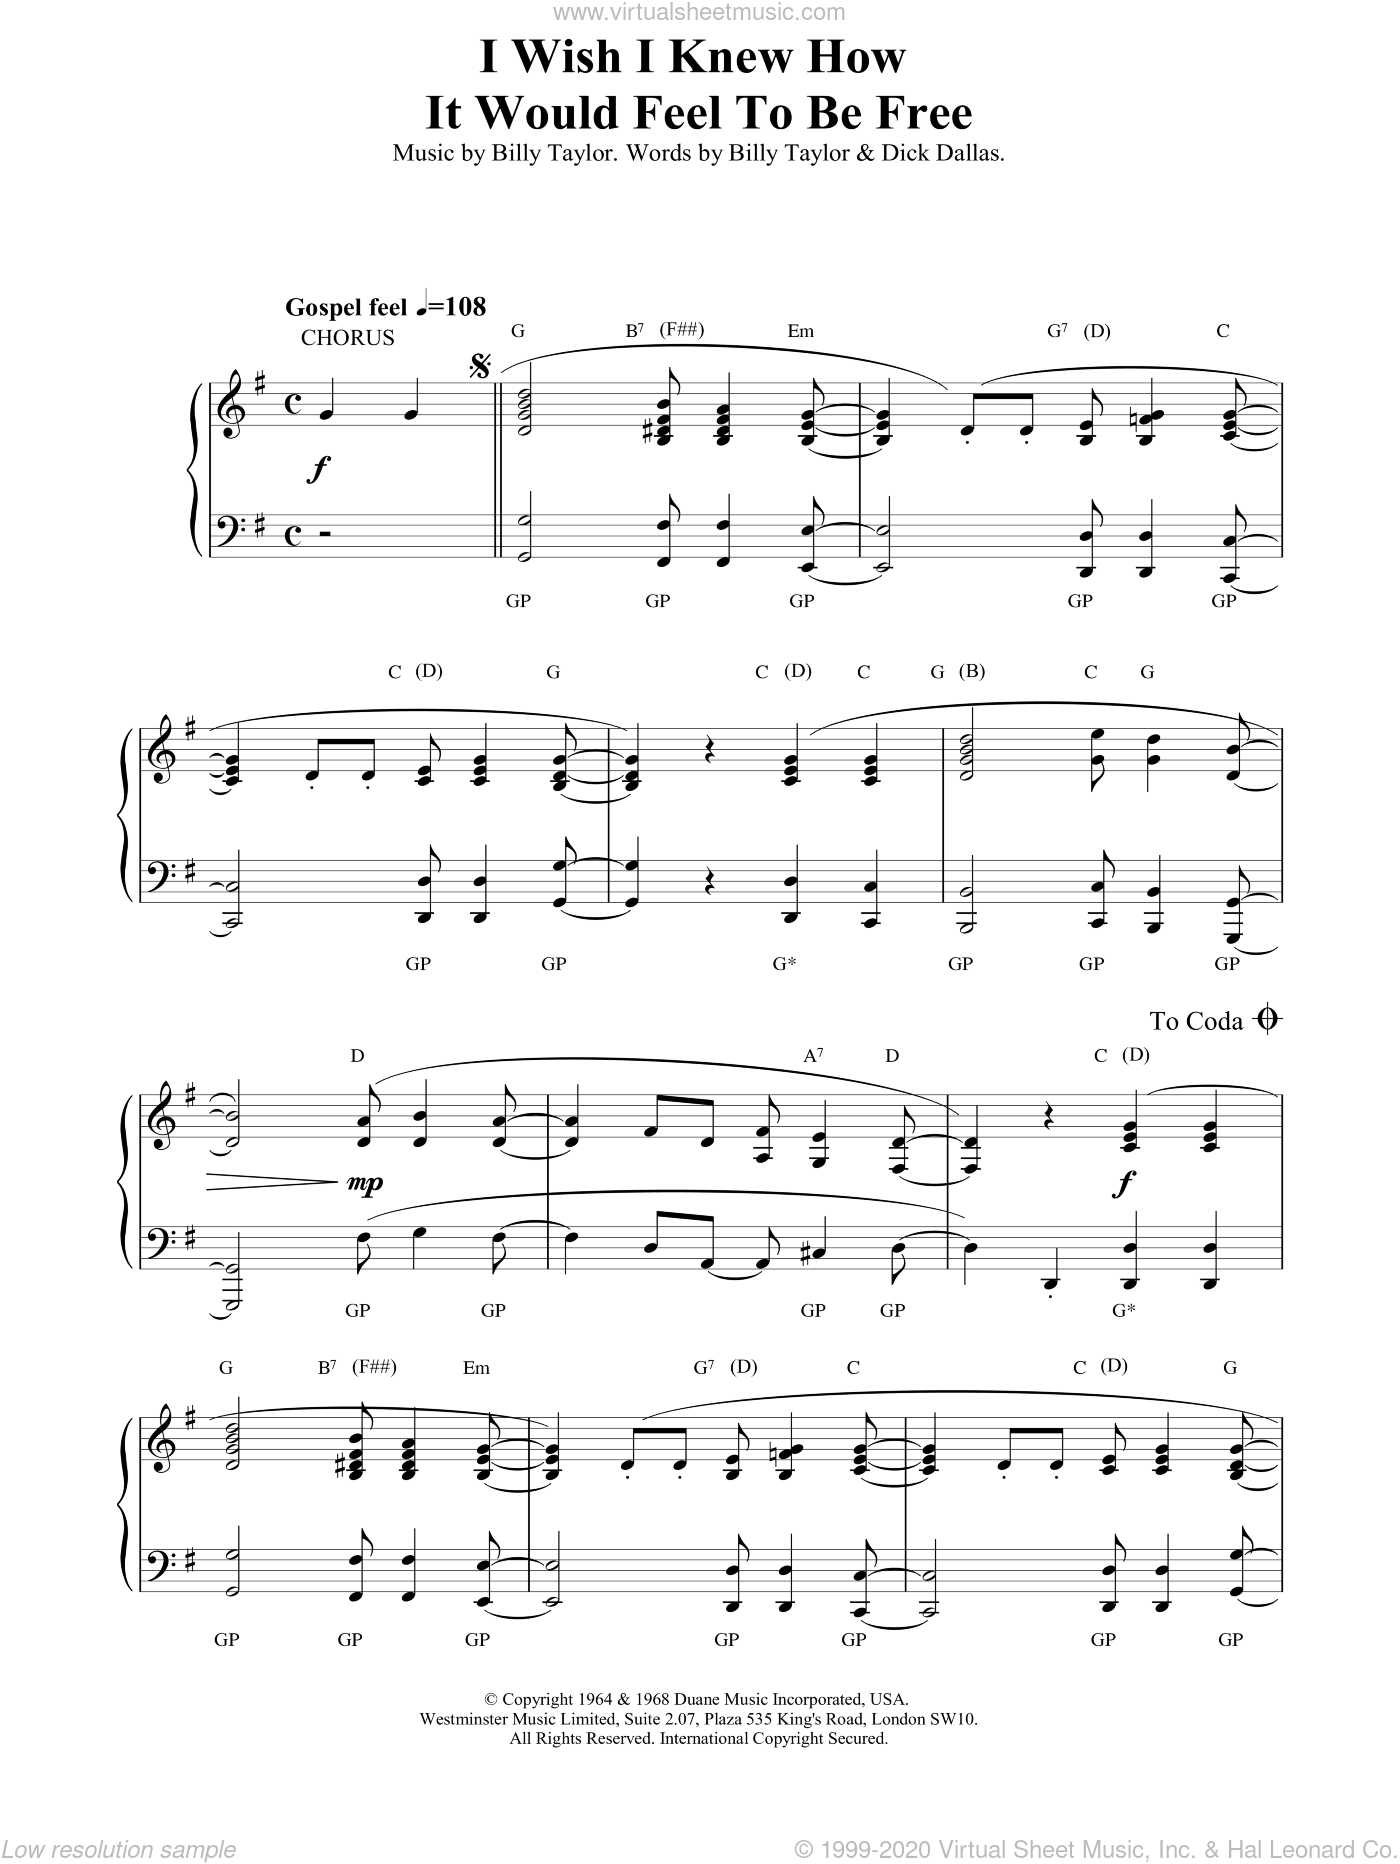 I Wish I Knew How It Would Feel To Be Free sheet music for piano solo by Billy Taylor and Miscellaneous, intermediate skill level